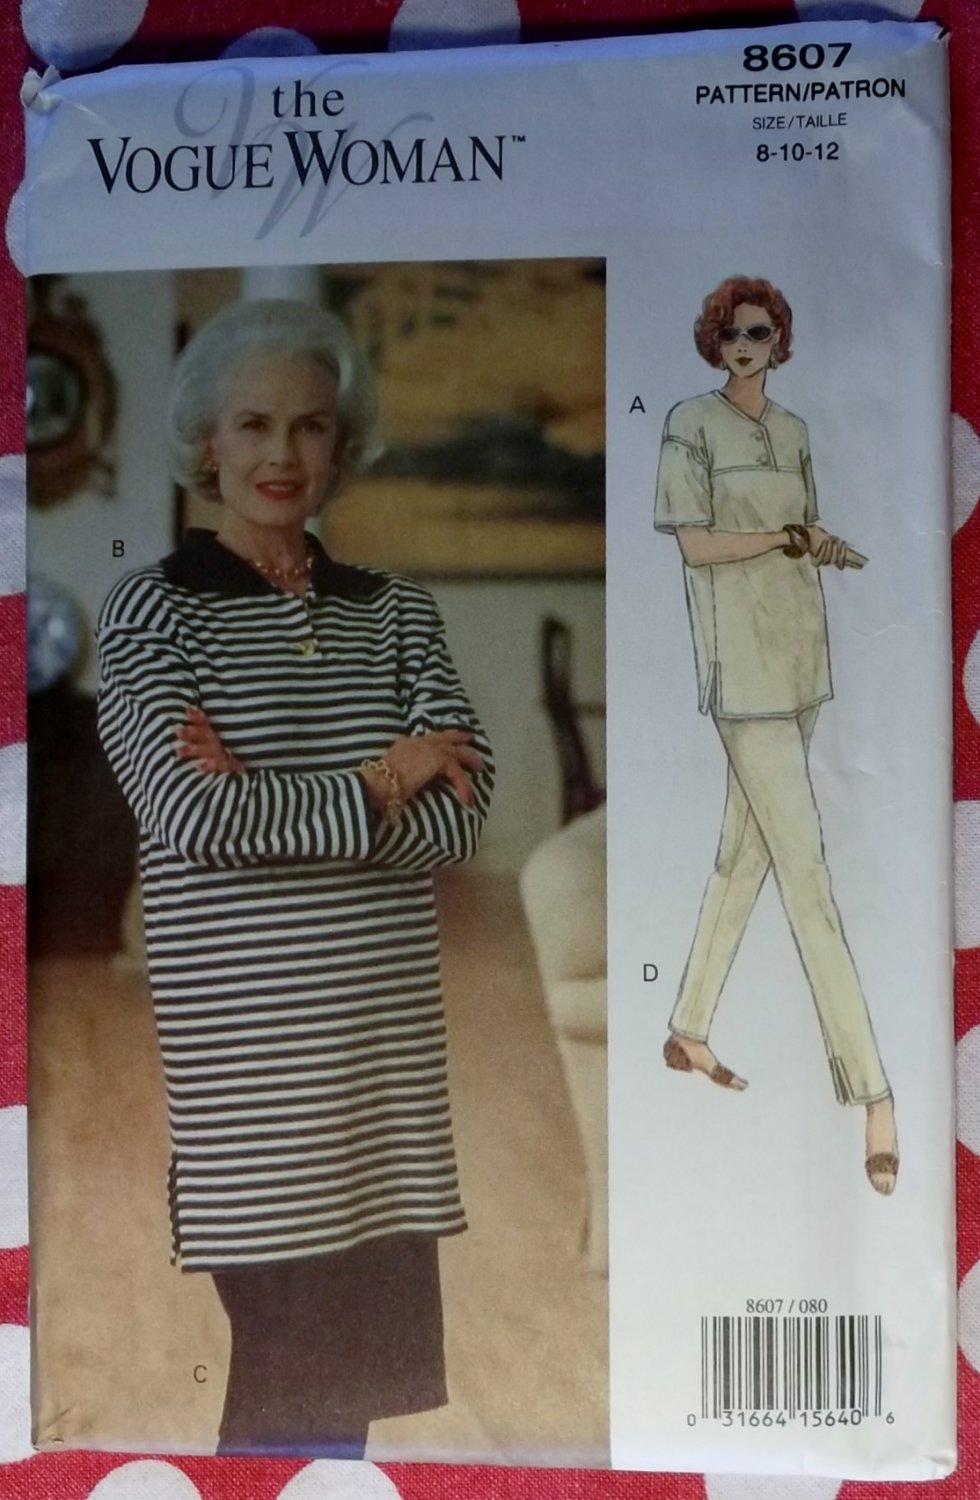 Vogue Sewing Pattern 8607 Misses Easy Pullover Tunic Top Skirt Pants, Size 8 10 12, Uncut